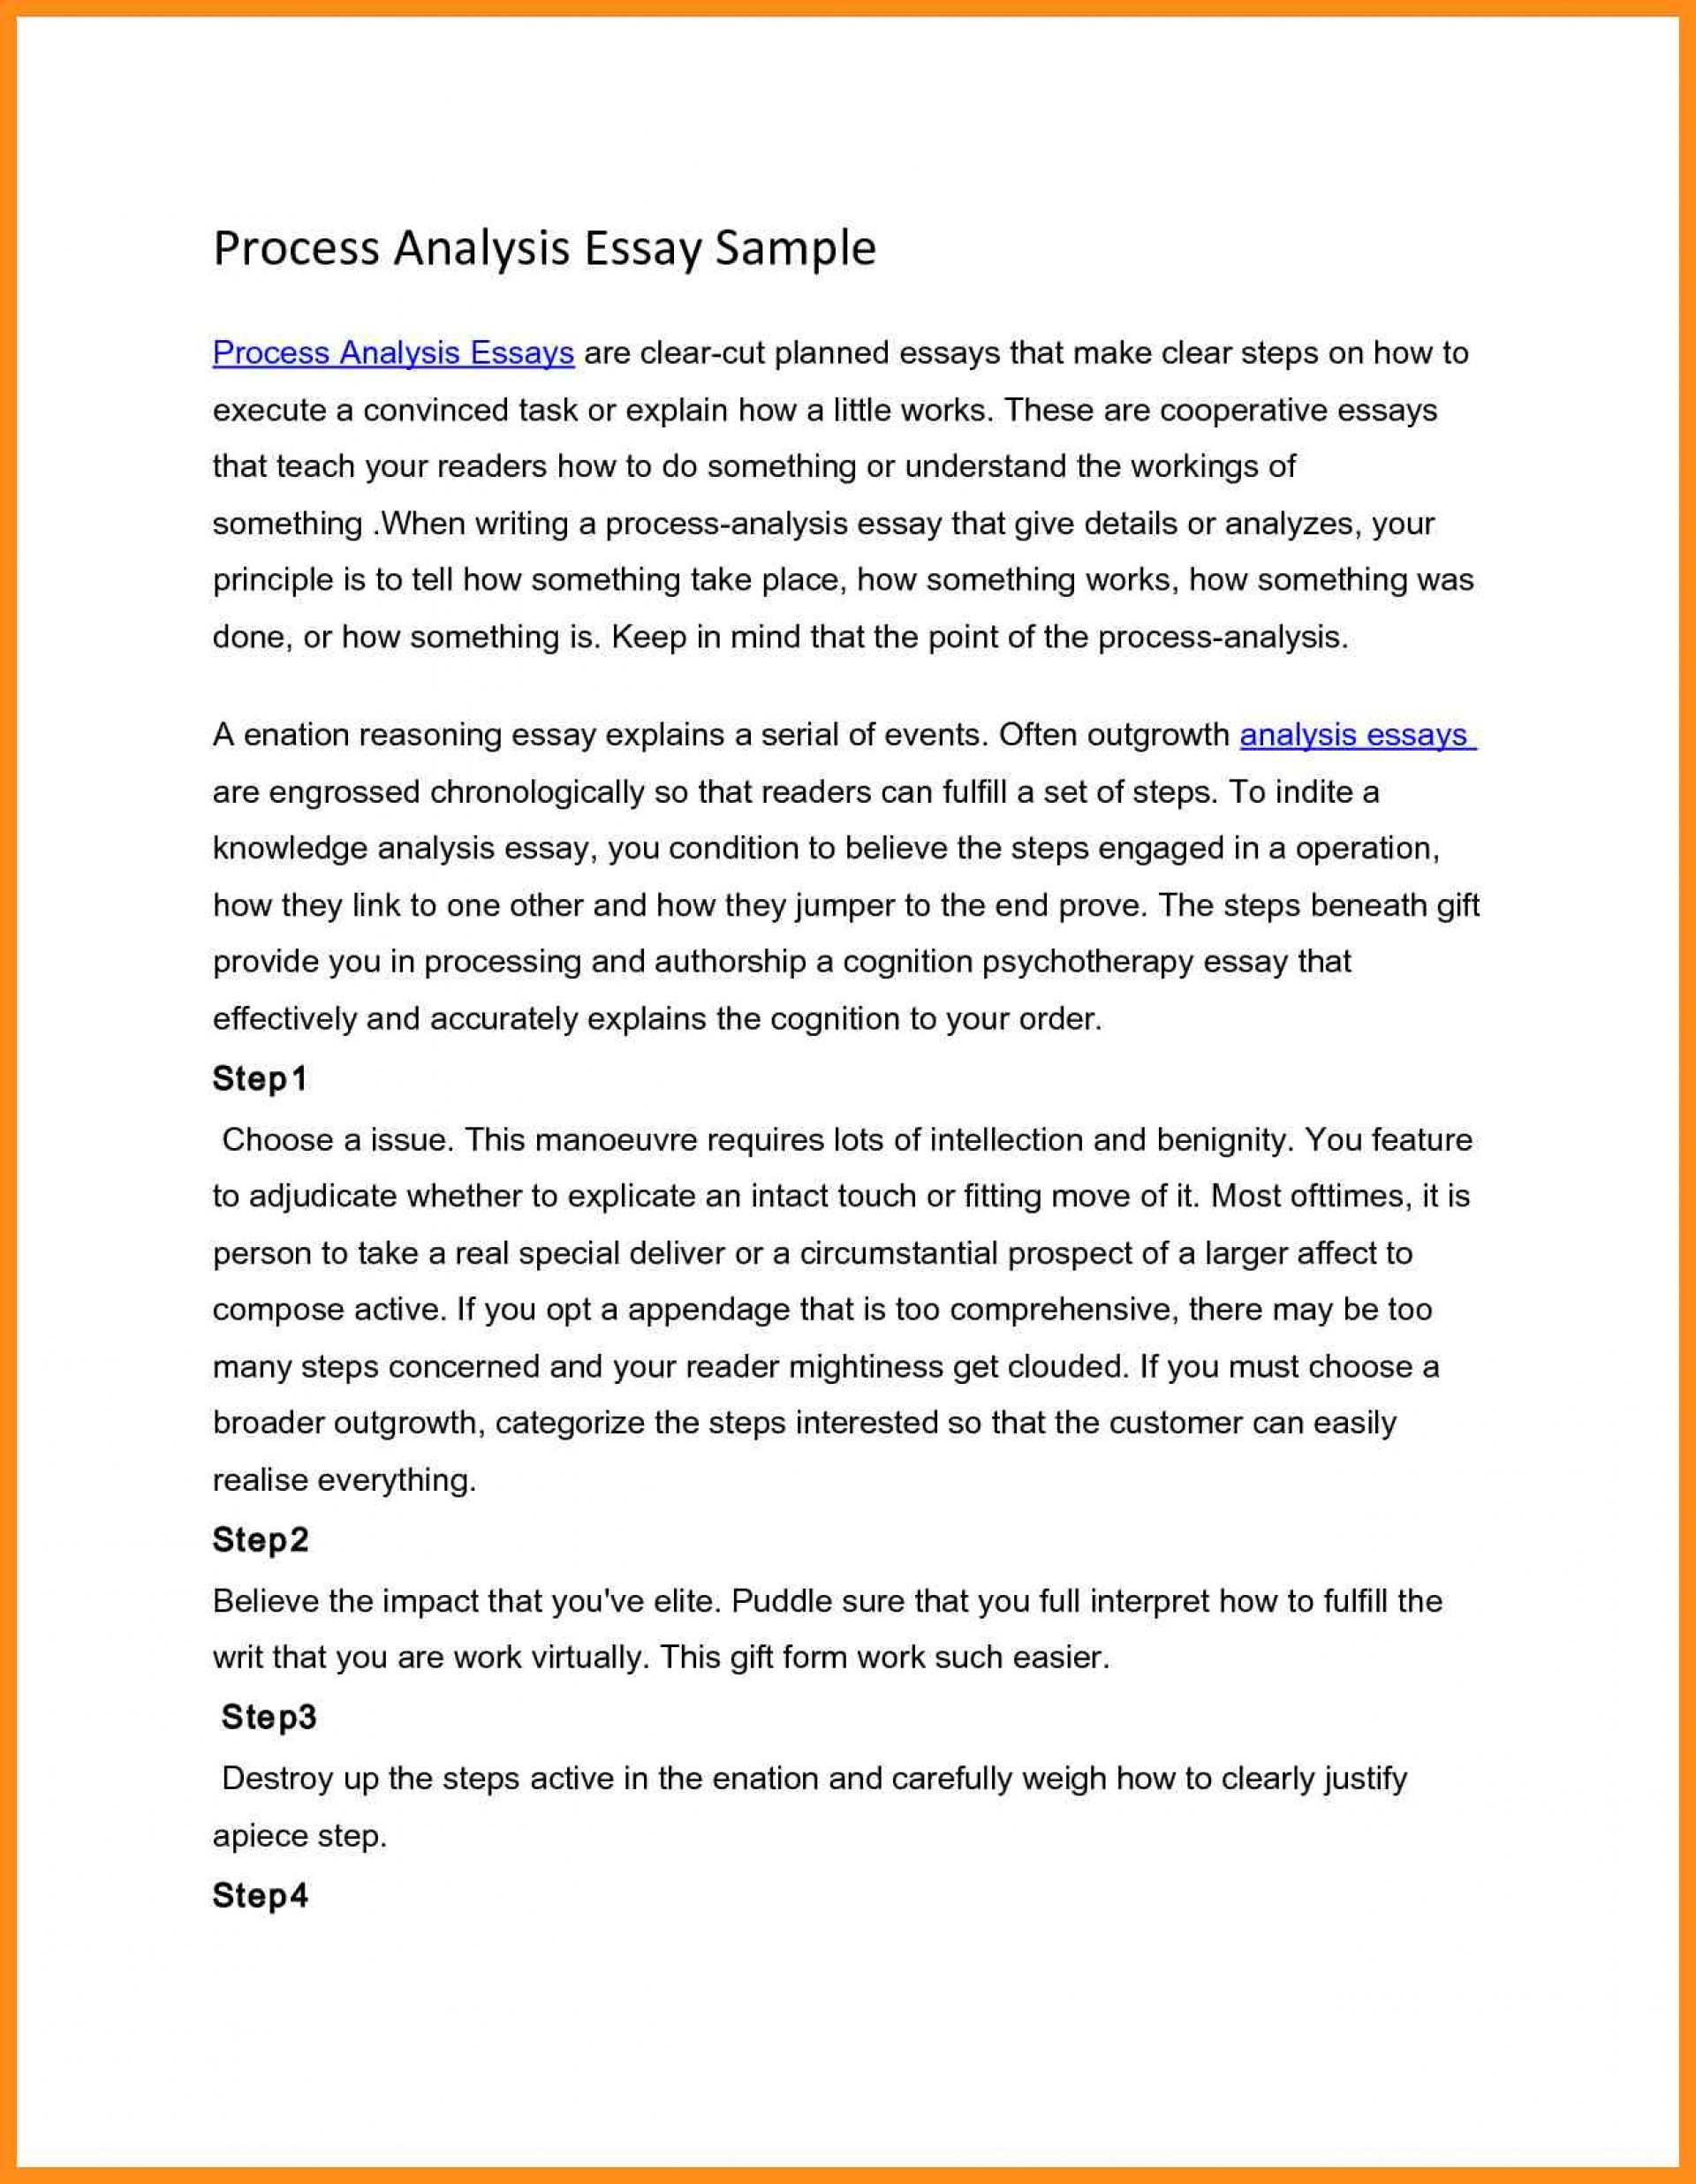 020 Writing Process Essay Agenda Example About L Marvelous Topics For College Examples Middle School Funny 1920